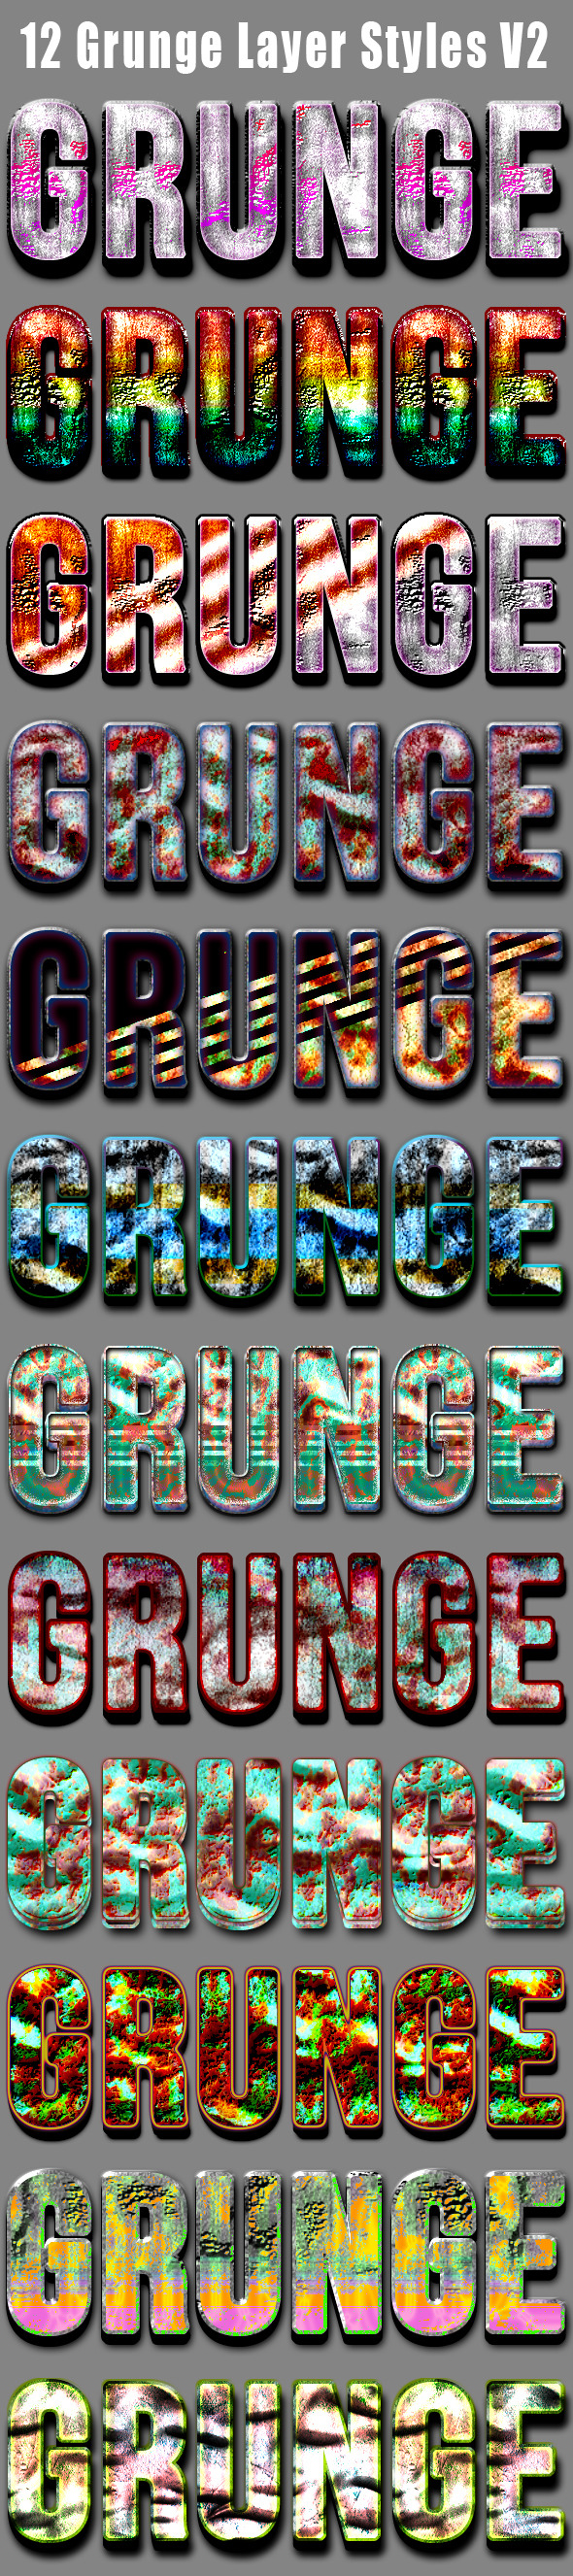 12 Grunge Layer Styles V2 - Text Effects Actions